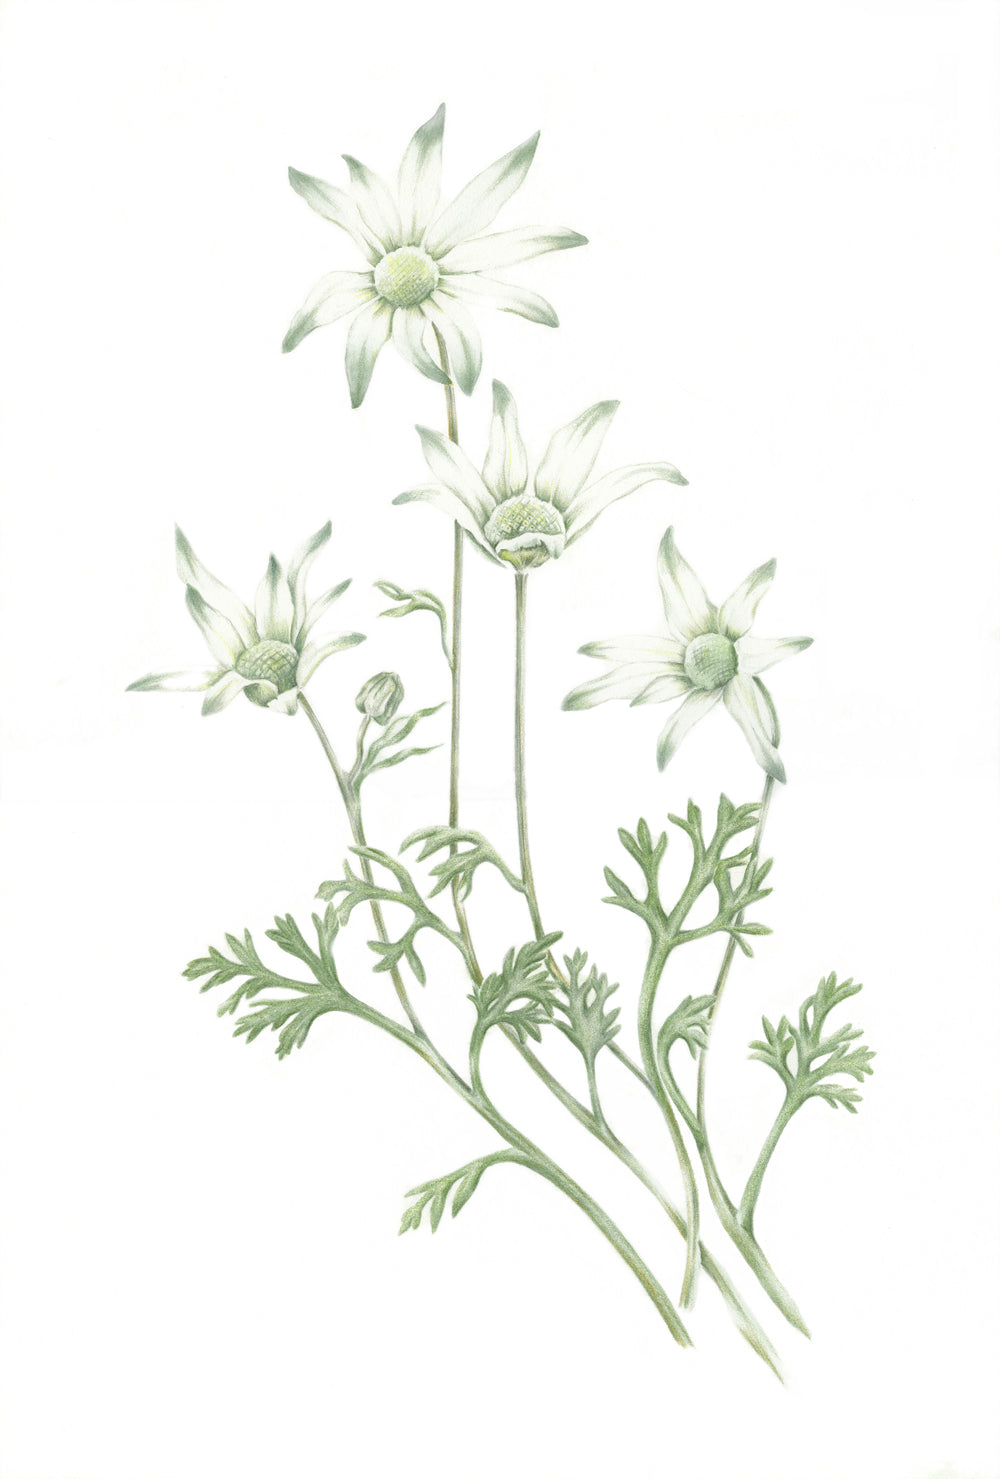 Flannel Flower print by Alison Dickin